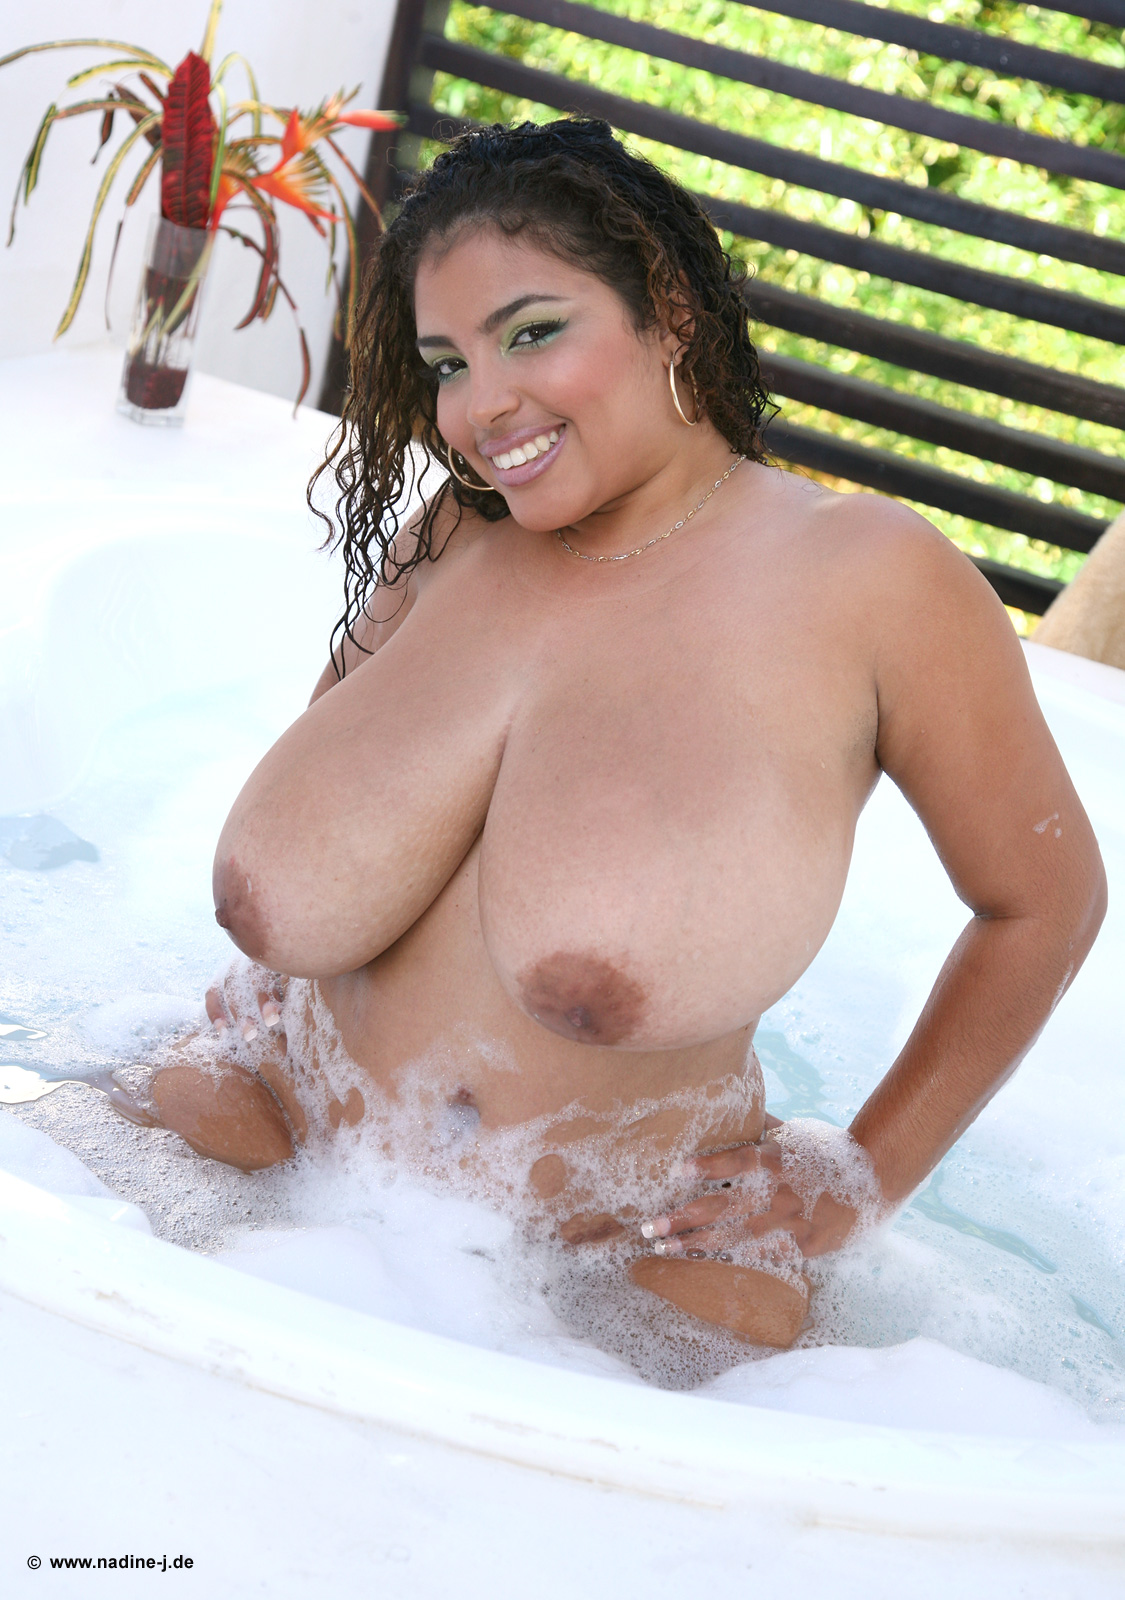 strong-femdom-dominican-boobs-naked-girls-naked-how